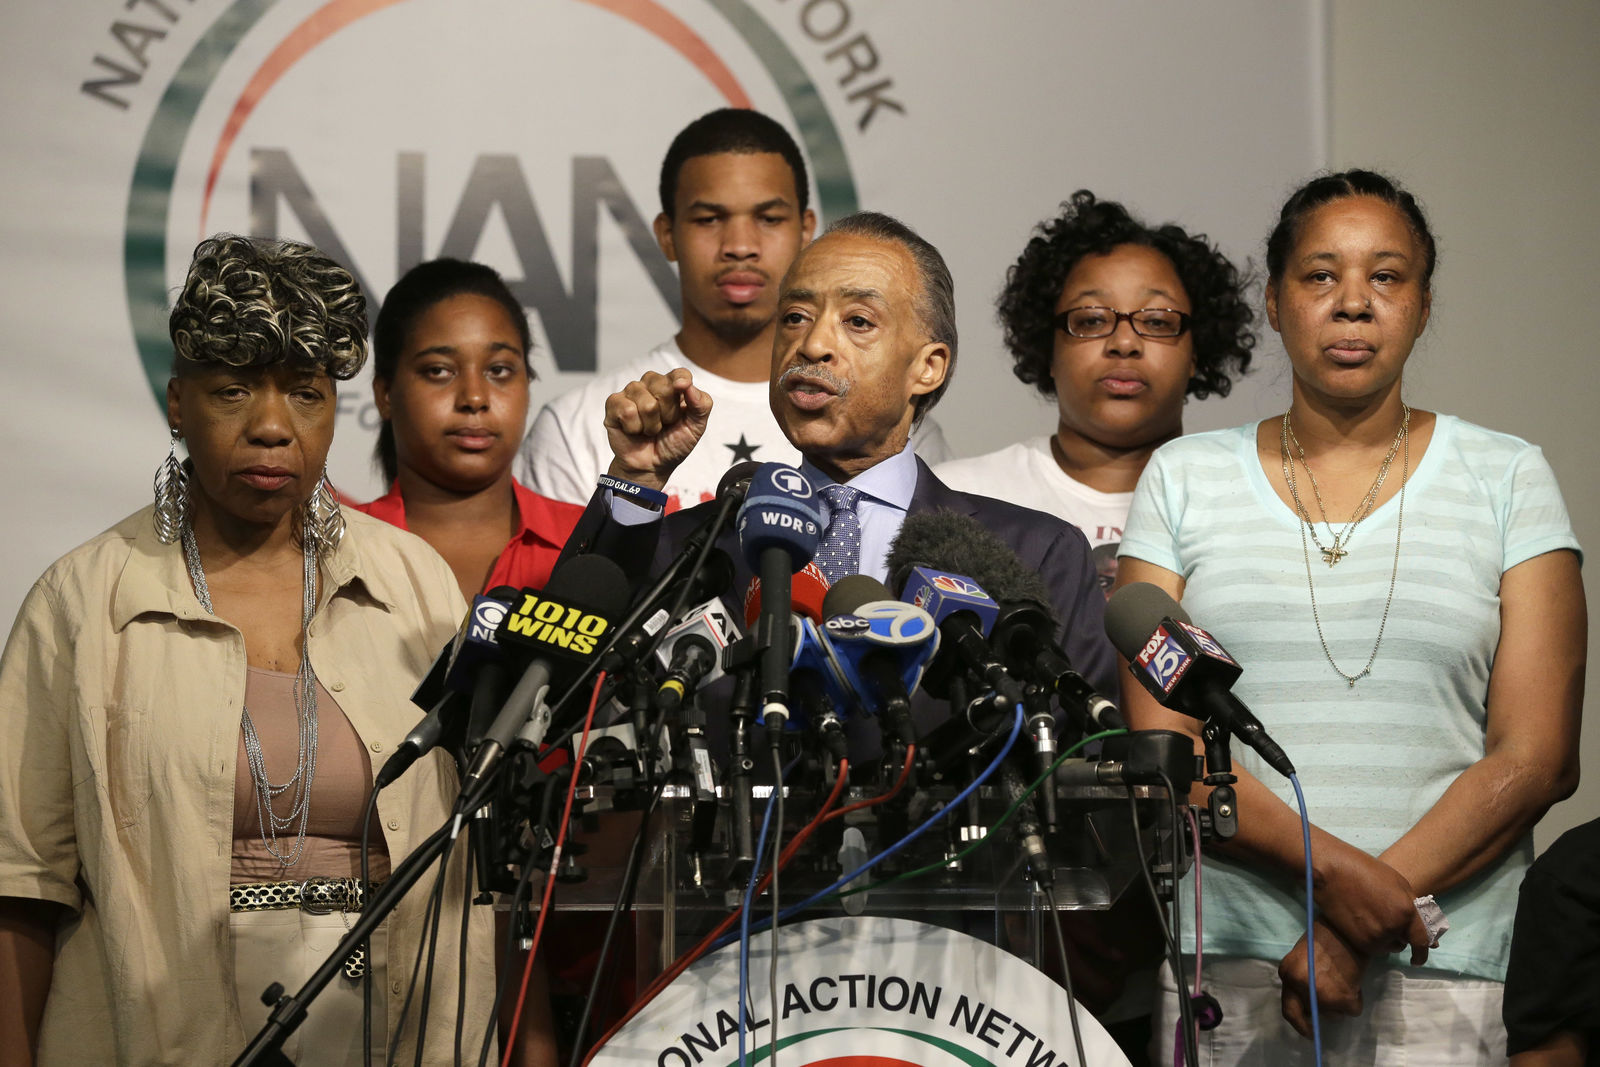 The Rev. Al Sharpton, center, is joined by Eric Garner's mother Gwen Carr, left, daughter Erica Garner, second from left, son Eric Garner, third from left, daughter Emerald Snipes, second from right, and wife Esaw Snipes, as he speaks during a news conference, Tuesday, July 14, 2015, in New York. (AP Photo/Mary Altaffer)